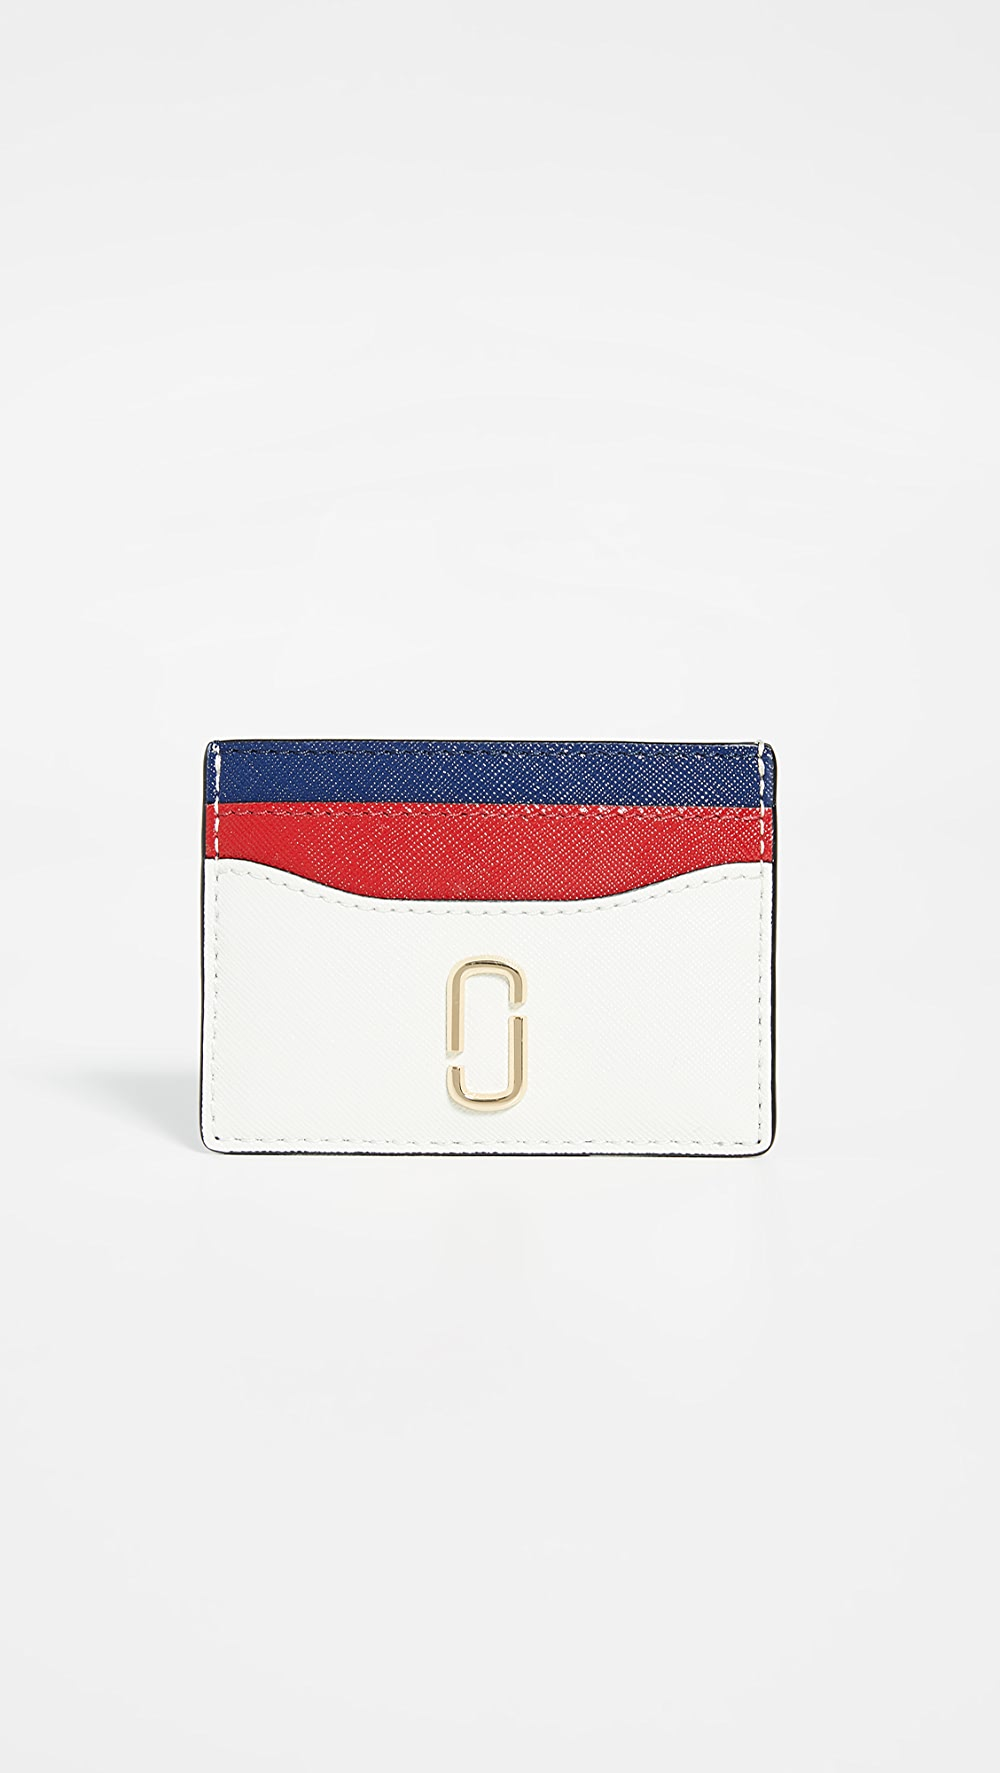 Well-Educated The Marc Jacobs - Snapshot Card Case Bright And Translucent In Appearance